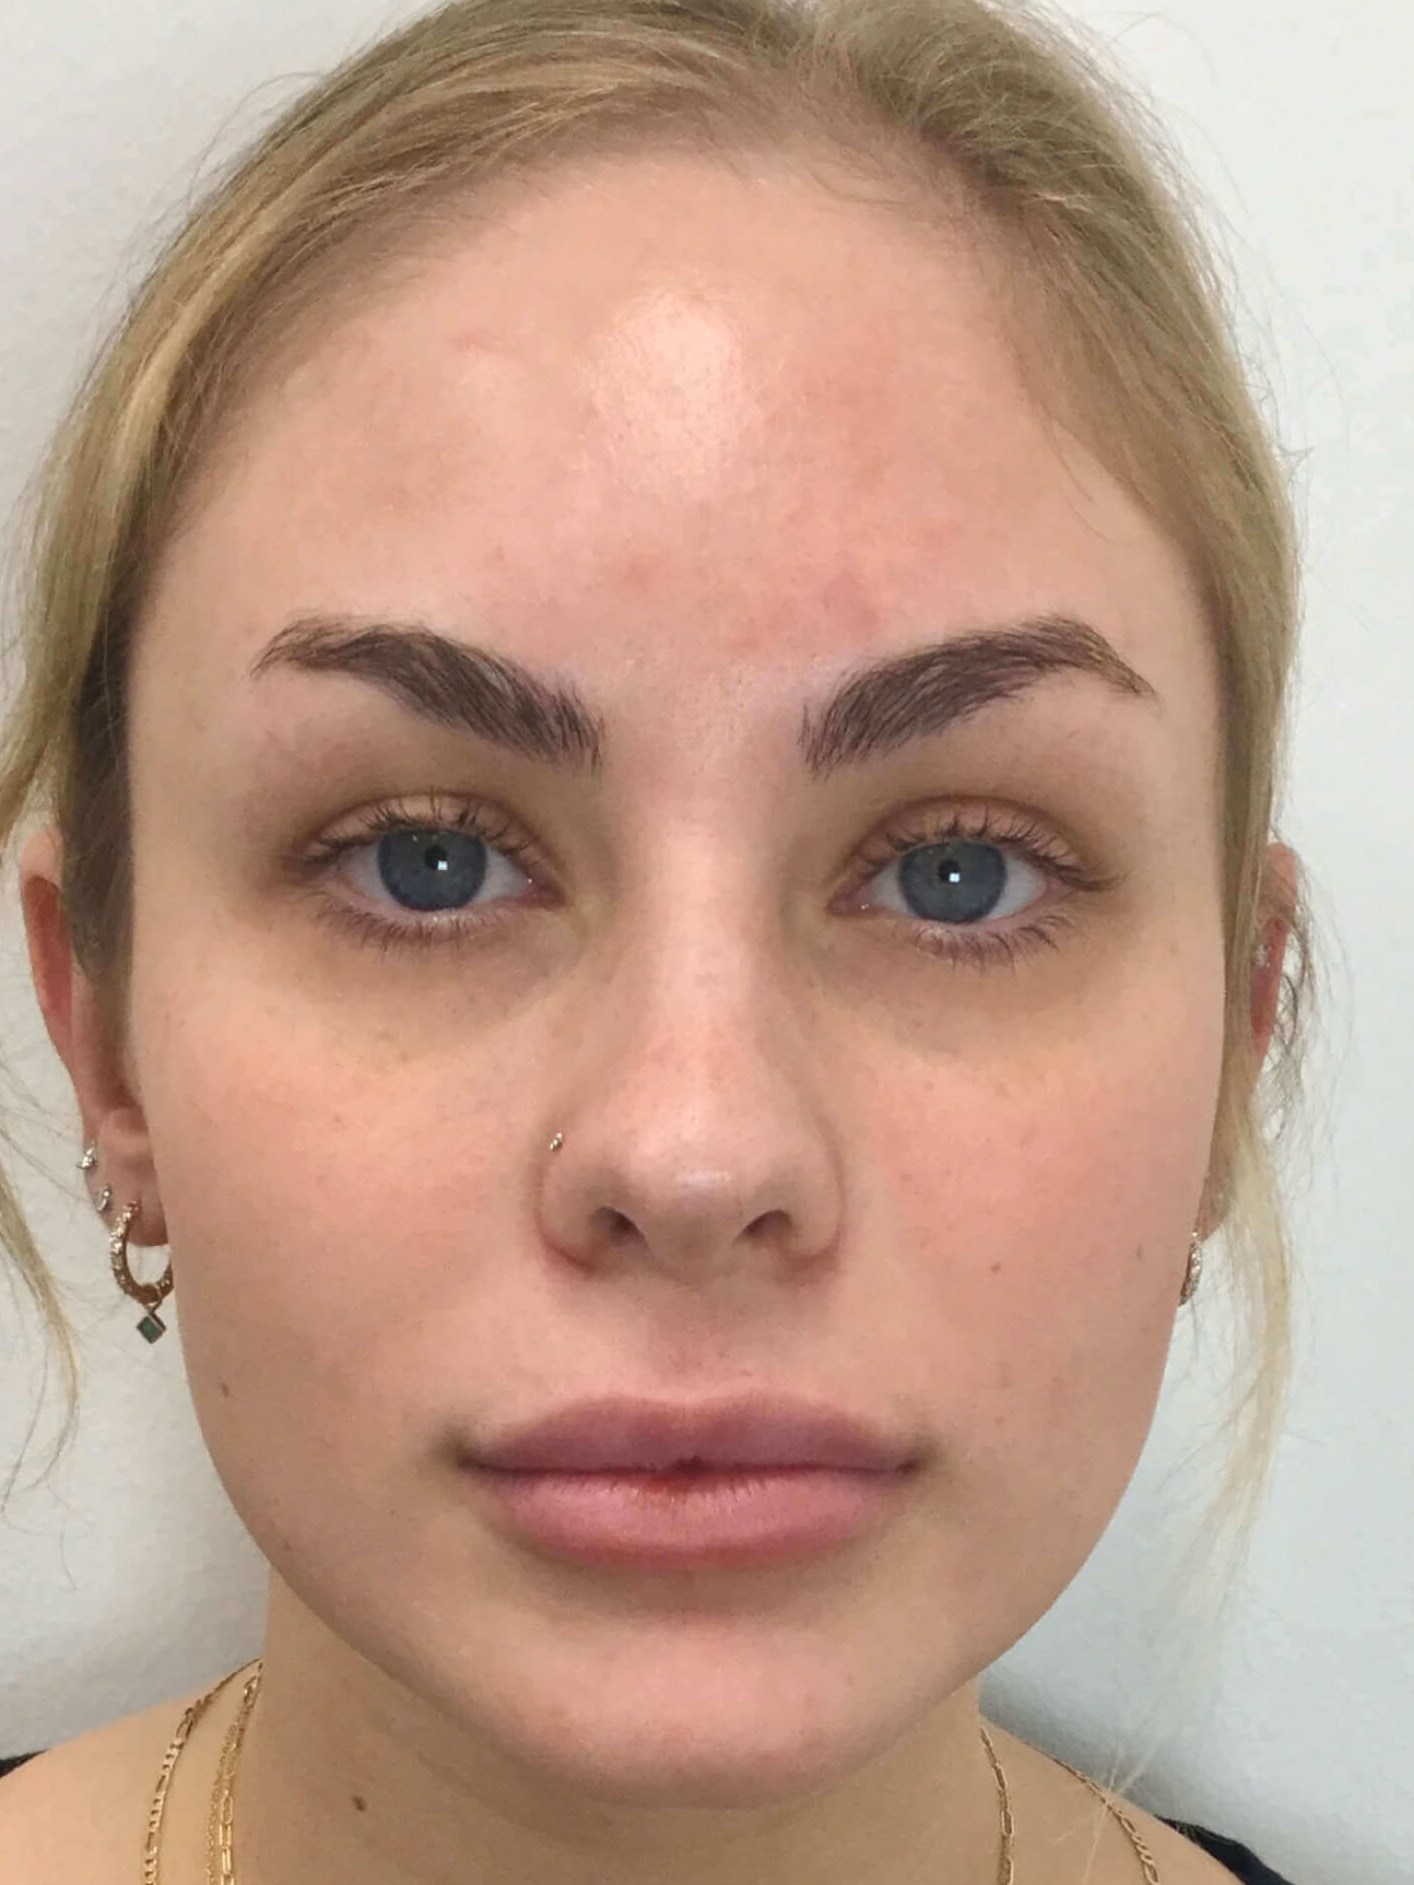 WOMAN IN DALLAS HAS DERMAL FILLER TREATMENT WITH RESTYLANE AND VOLUMA